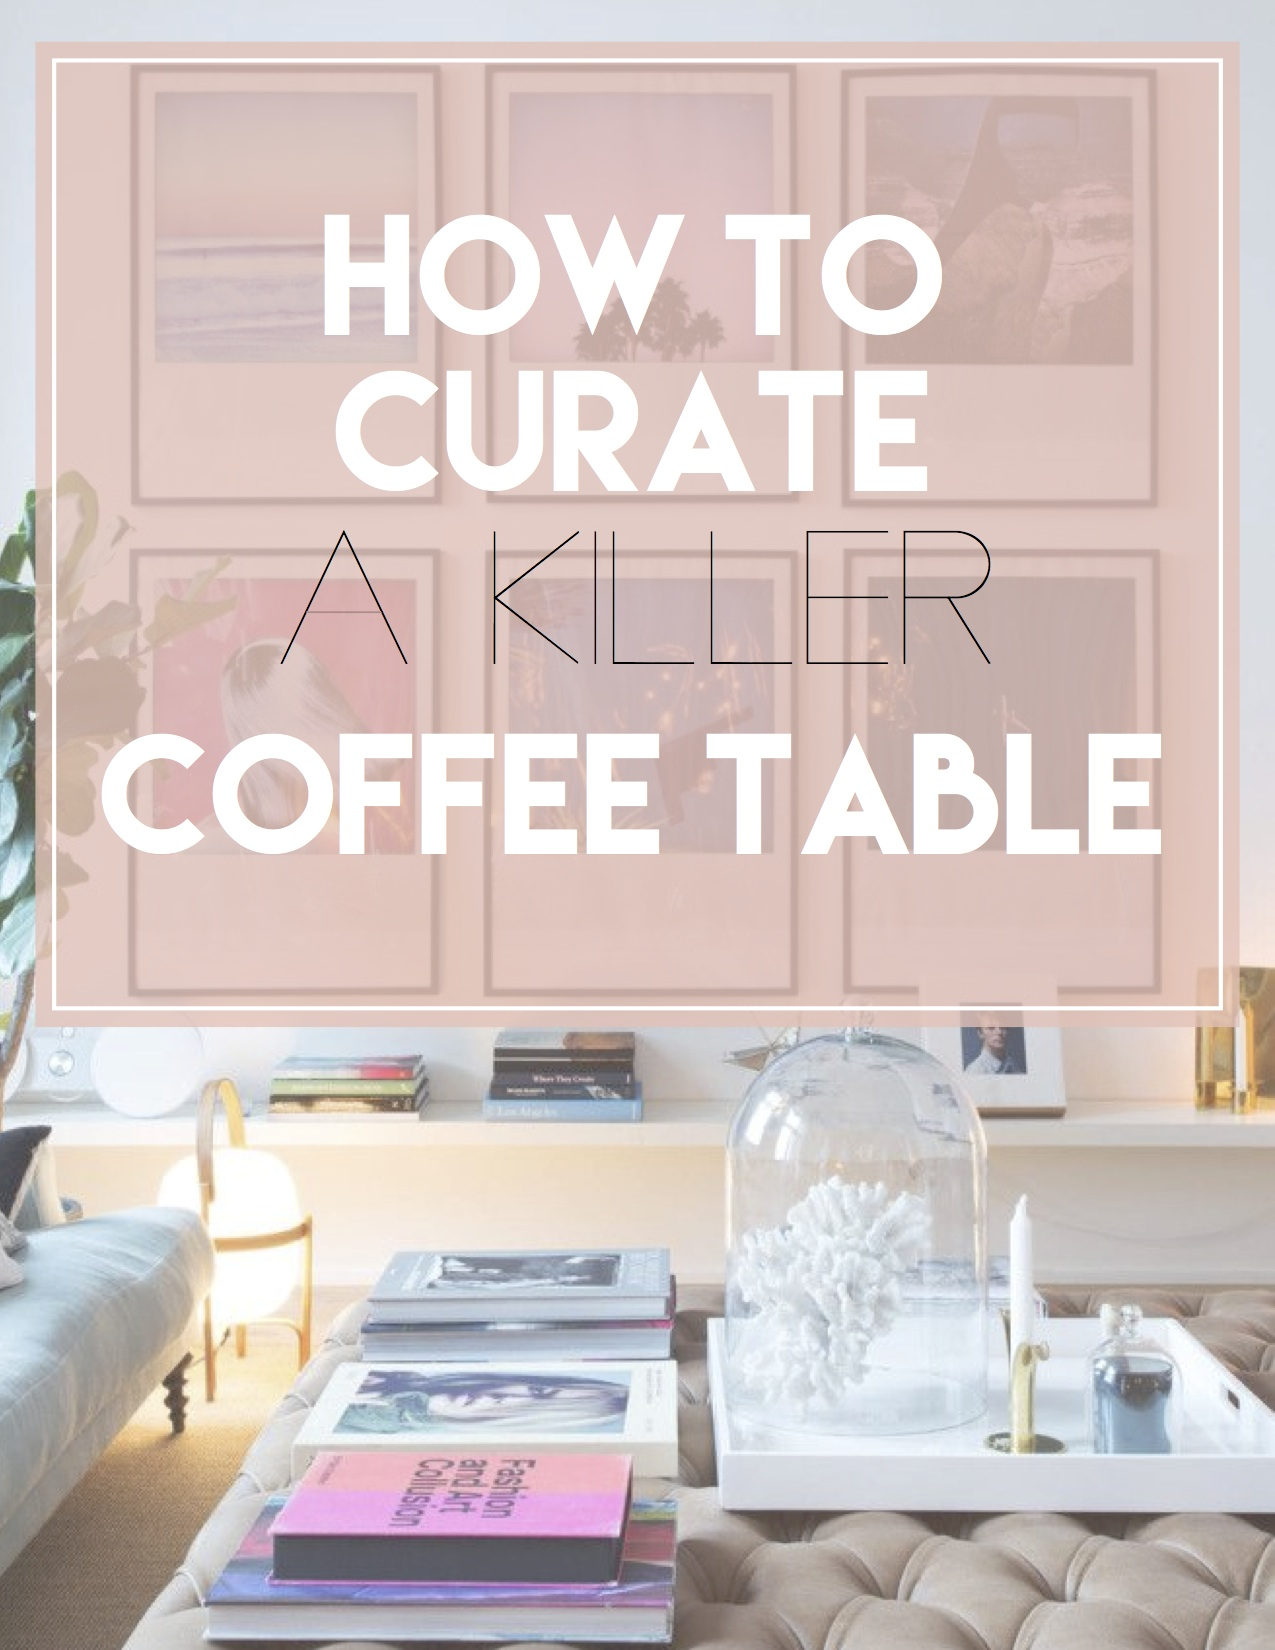 how to curate a killer coffee table